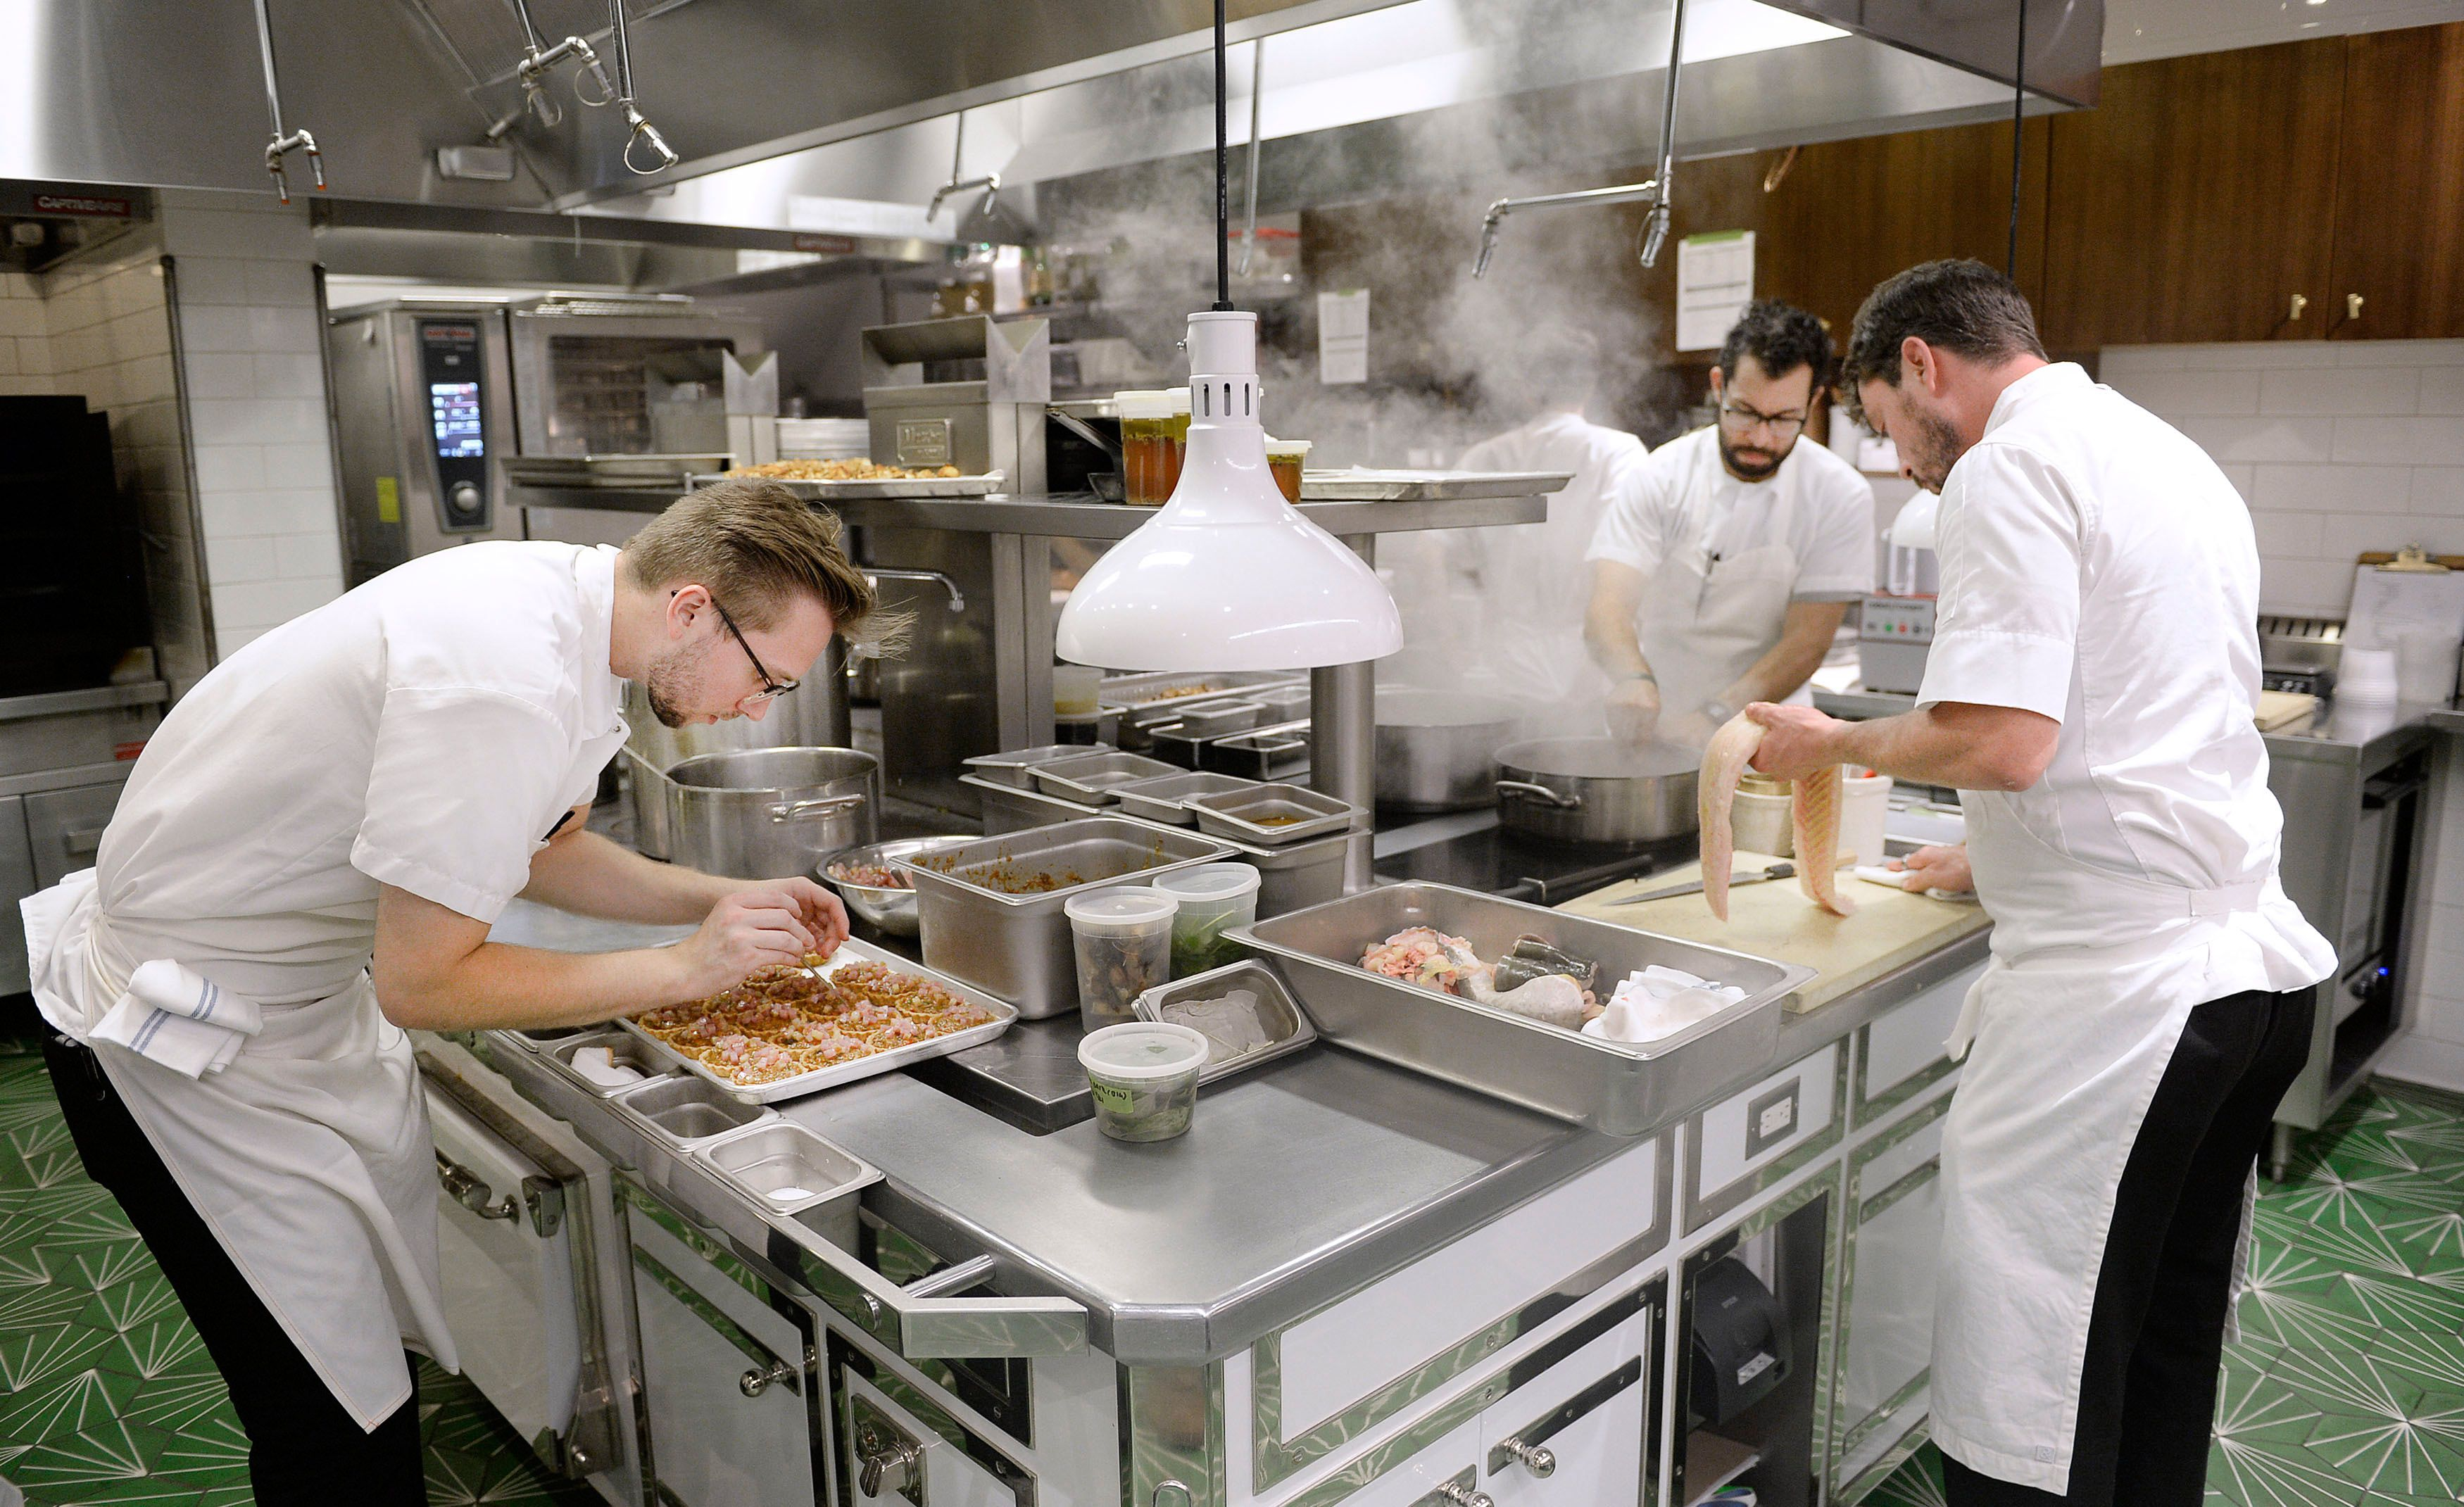 Kitchen staffers prepare dishes at Pineapple And Pearls restaurants on September 21, 2016, in Washington, DC.